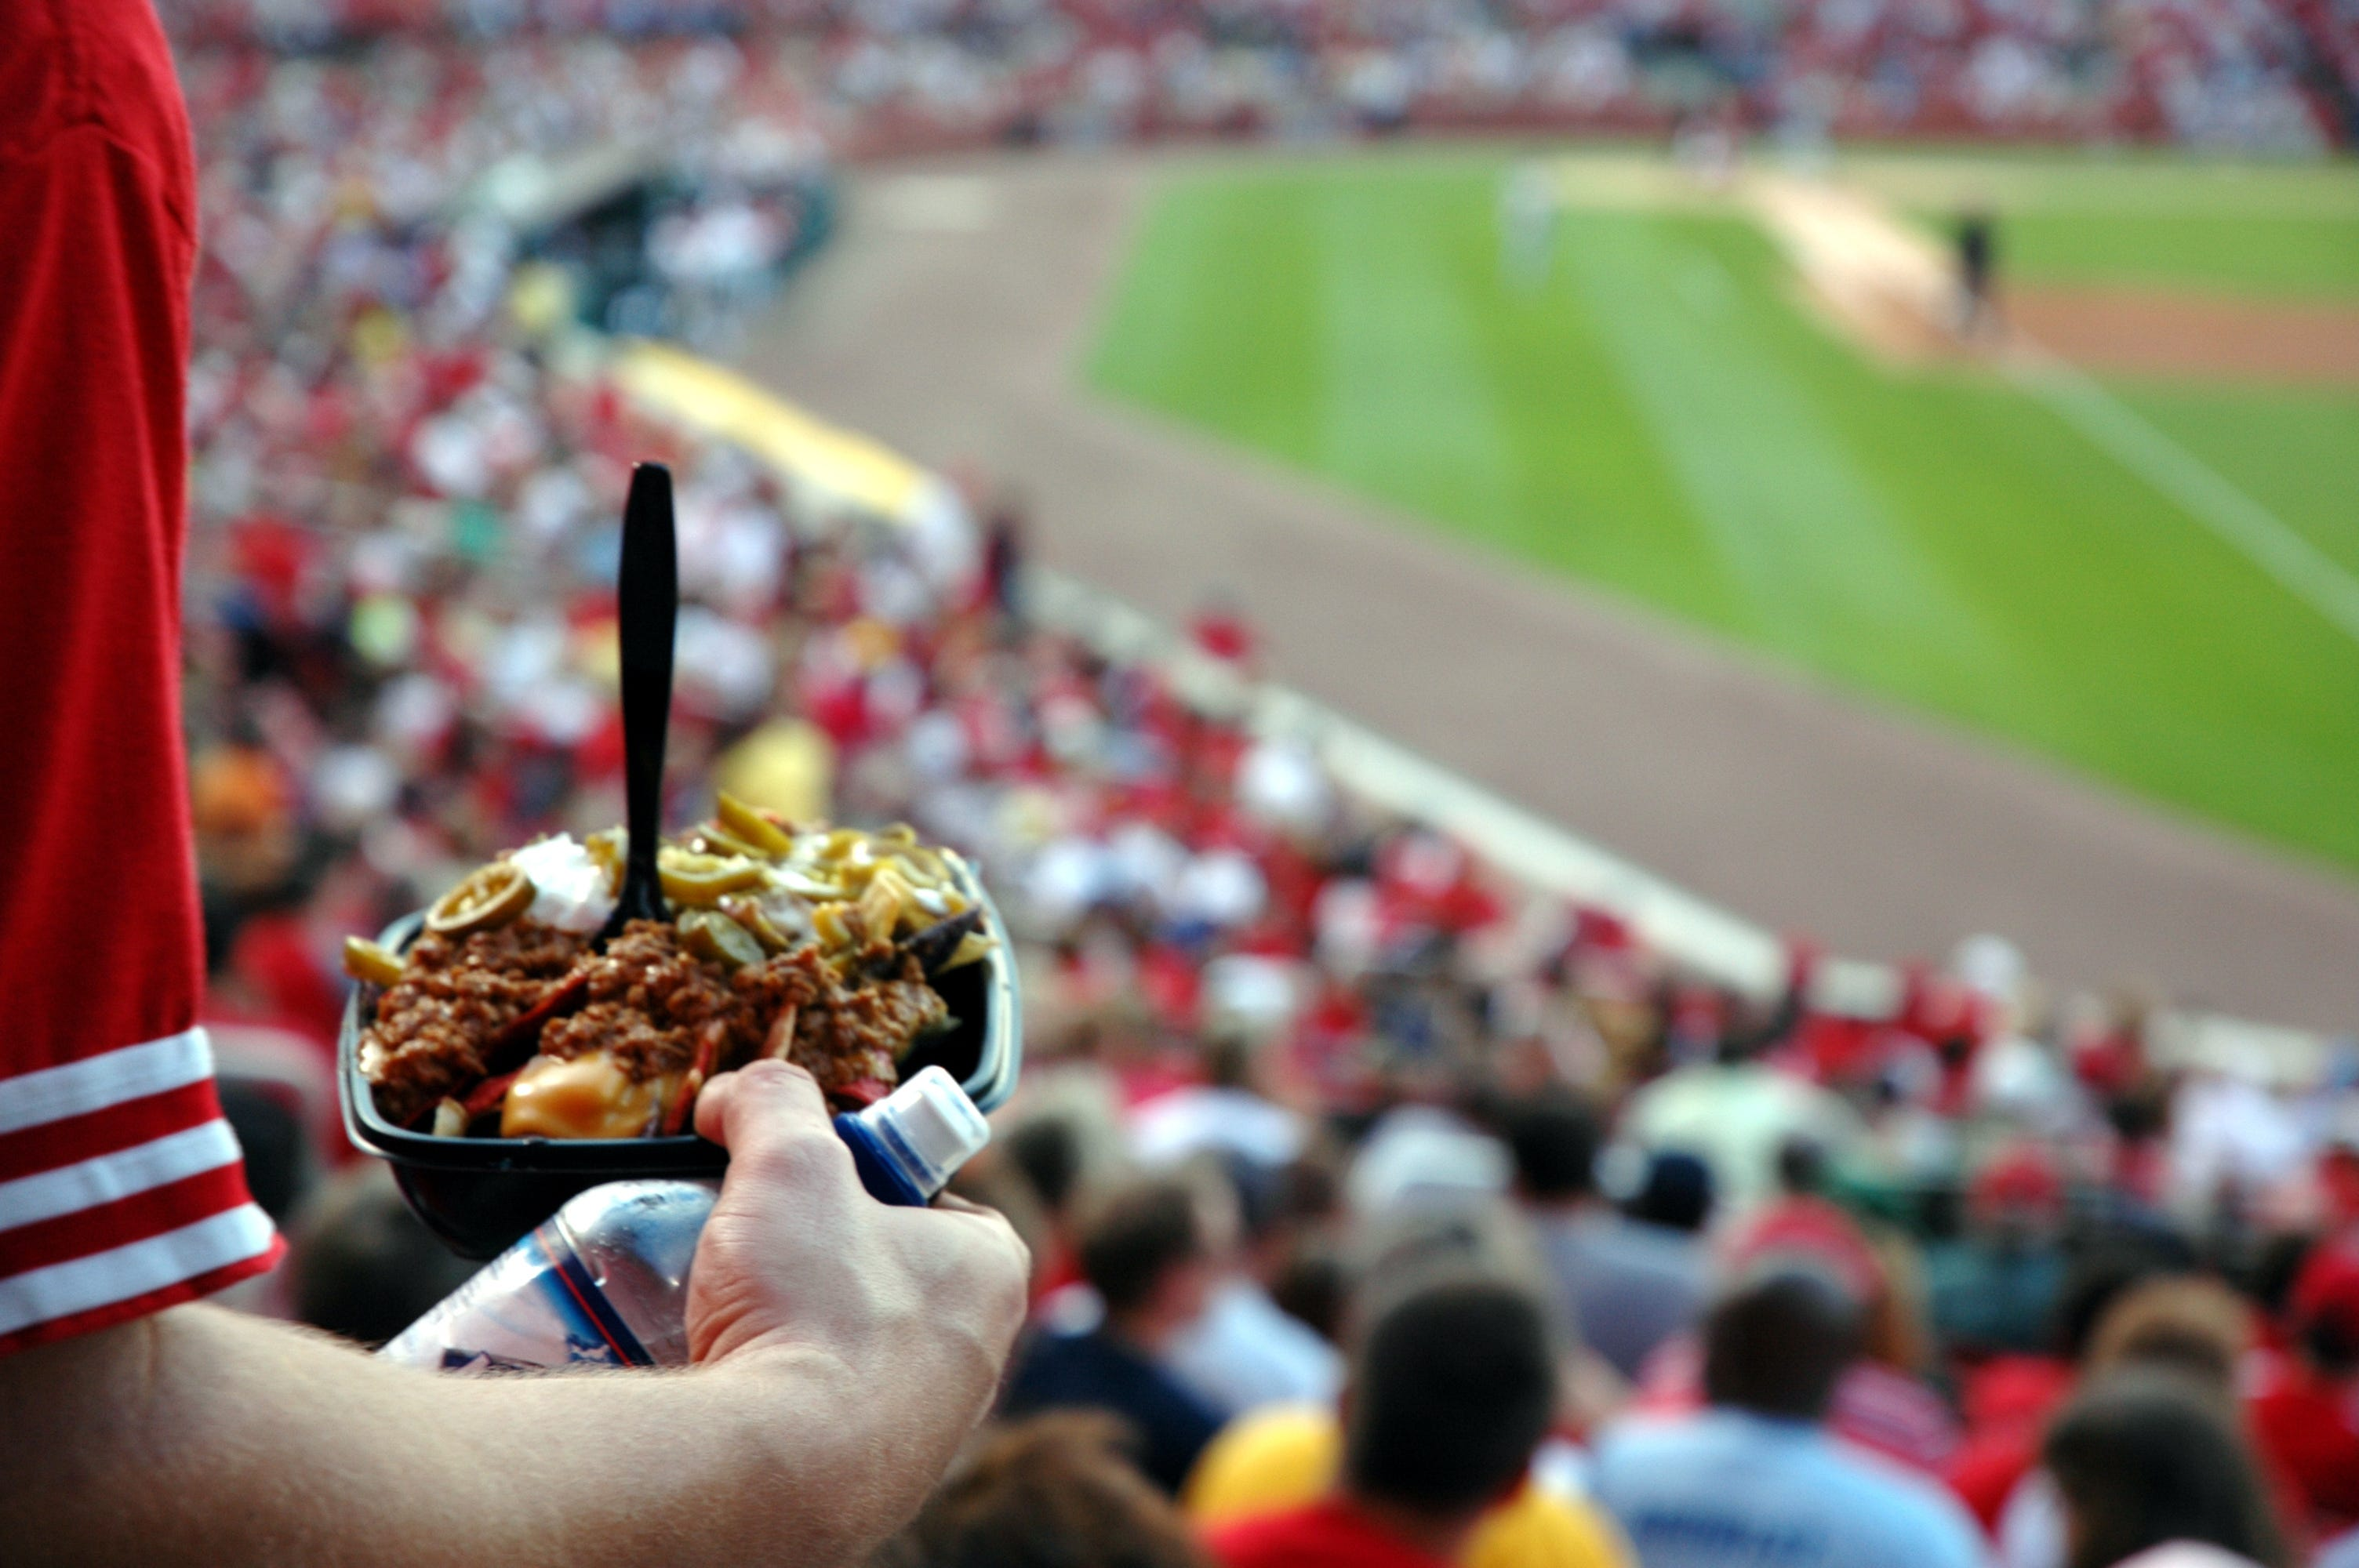 The strangest foods you'll find at MLB baseball stadiums in 2018   USA Today